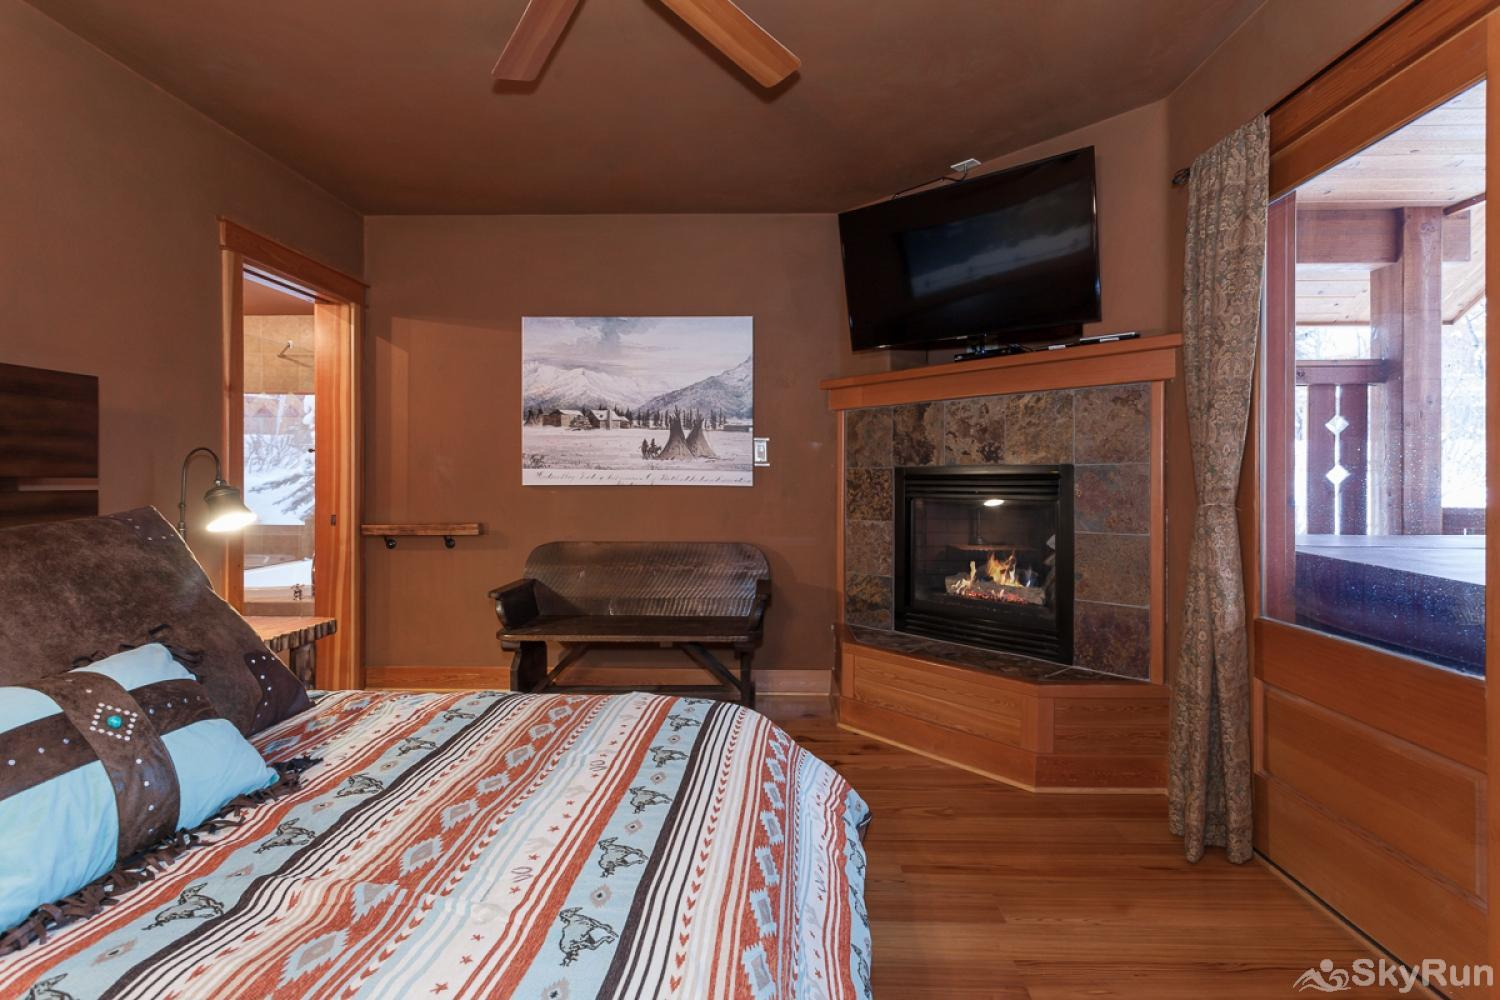 Highland Huckleberry Lodge The Bison Suite's creature comforts include a new TV and fireplace